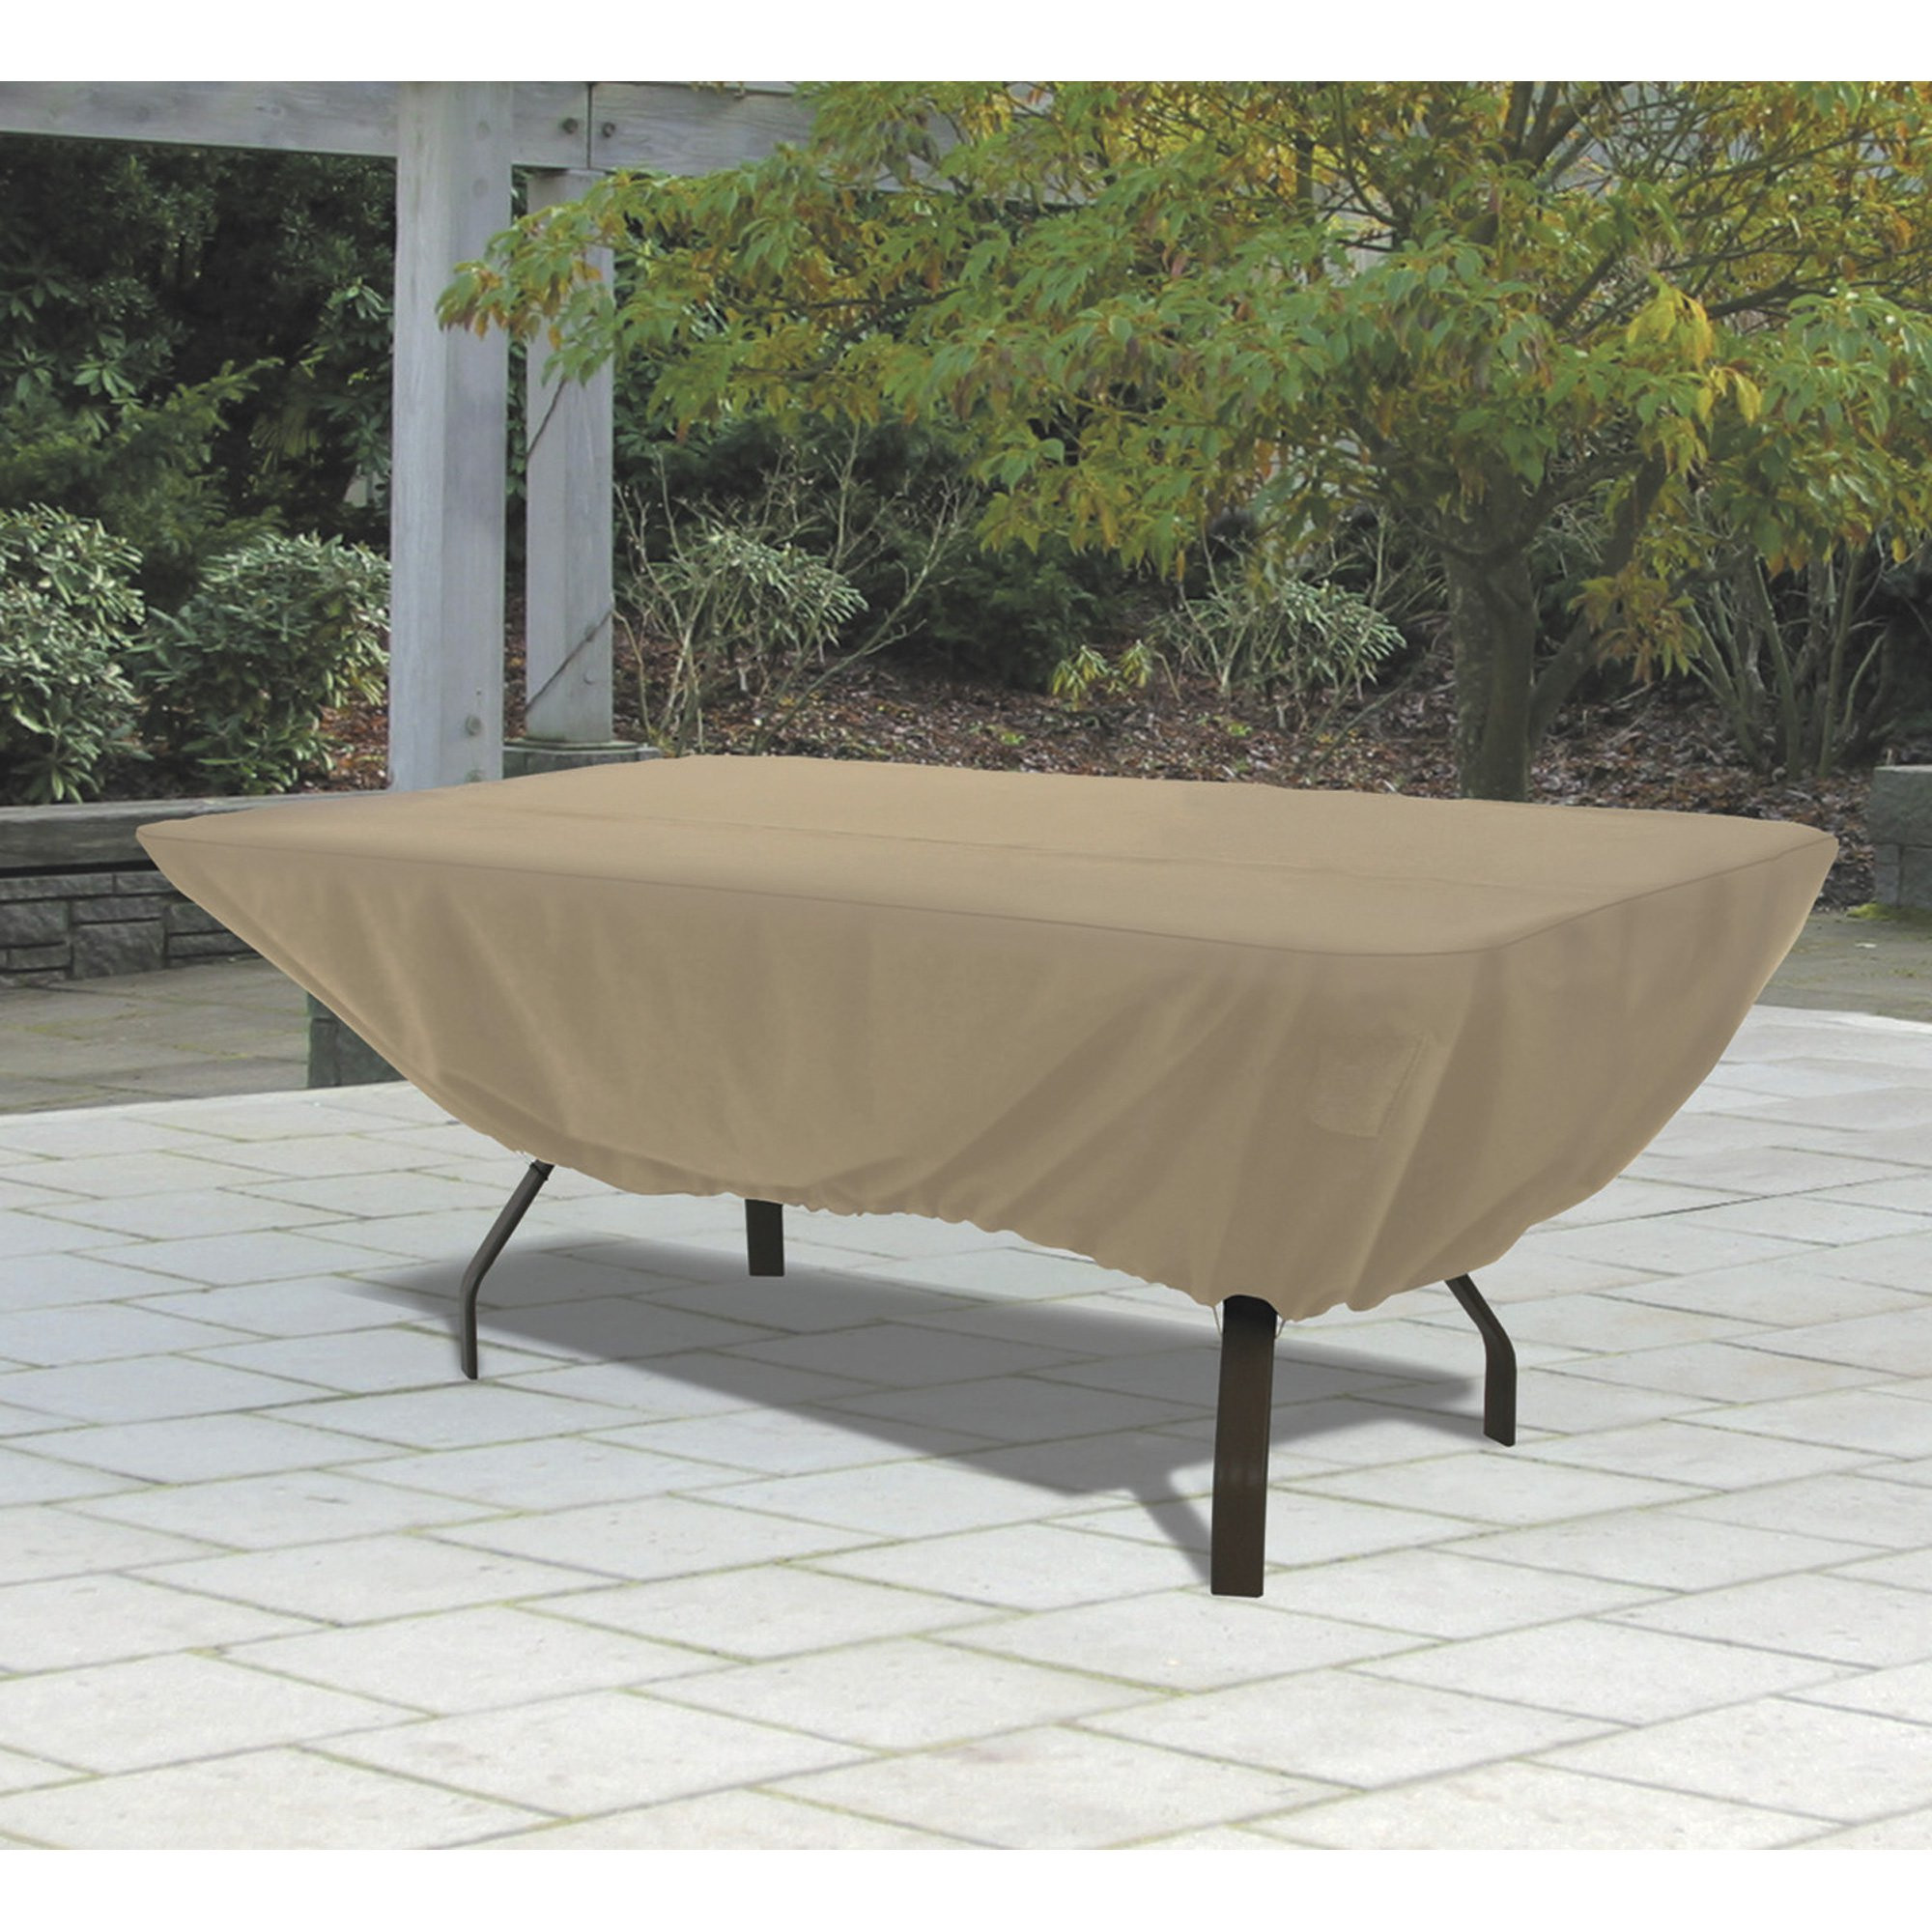 Best ideas about Patio Table Cover . Save or Pin Classic Accessories Terrazzo Rectangular Oval Patio Table Now.